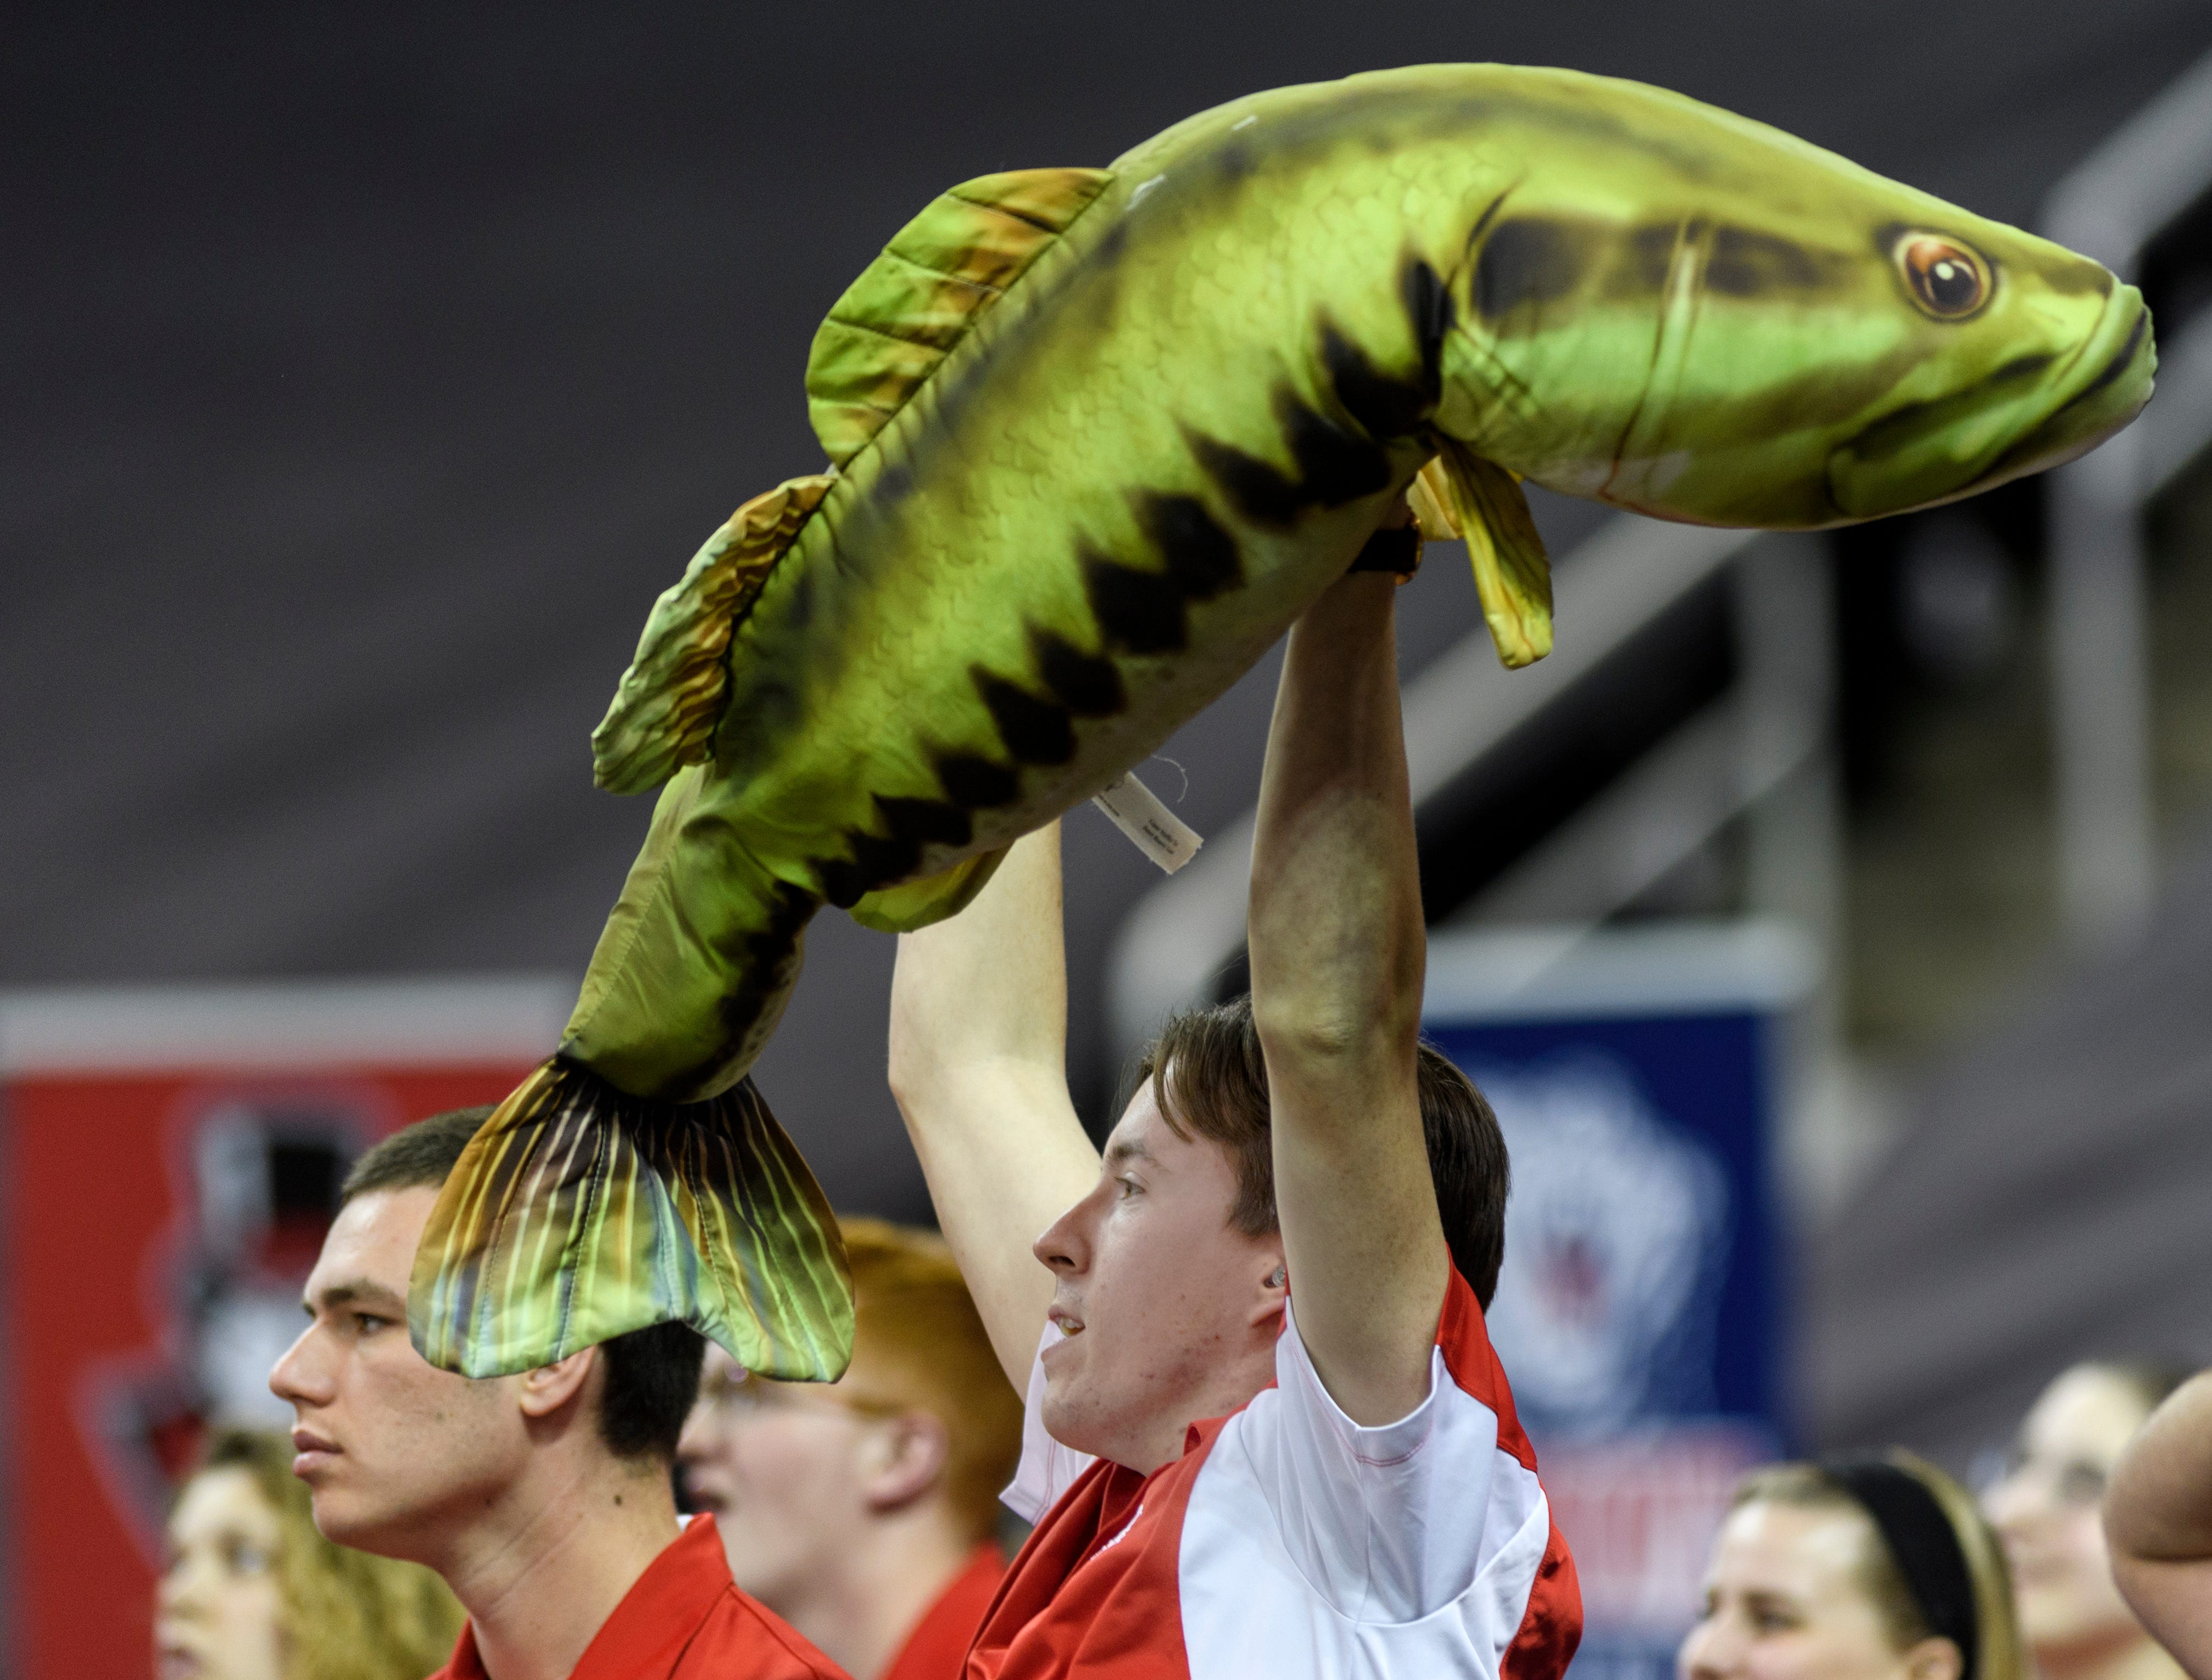 "Aaron Young, a member of the Belmont Blast pep band, holds up ""Bobby Fish,"" a plush fish named in honor of Belmont University President Robert Fisher during the women's basketball game against the Southeast Missouri Redhawks in the Ohio Valley Conference Tournament at Ford Center in Evansville, Ind., Wednesday, March 6, 2019. The pep band passes the fish around as they play music and cheer for their team."